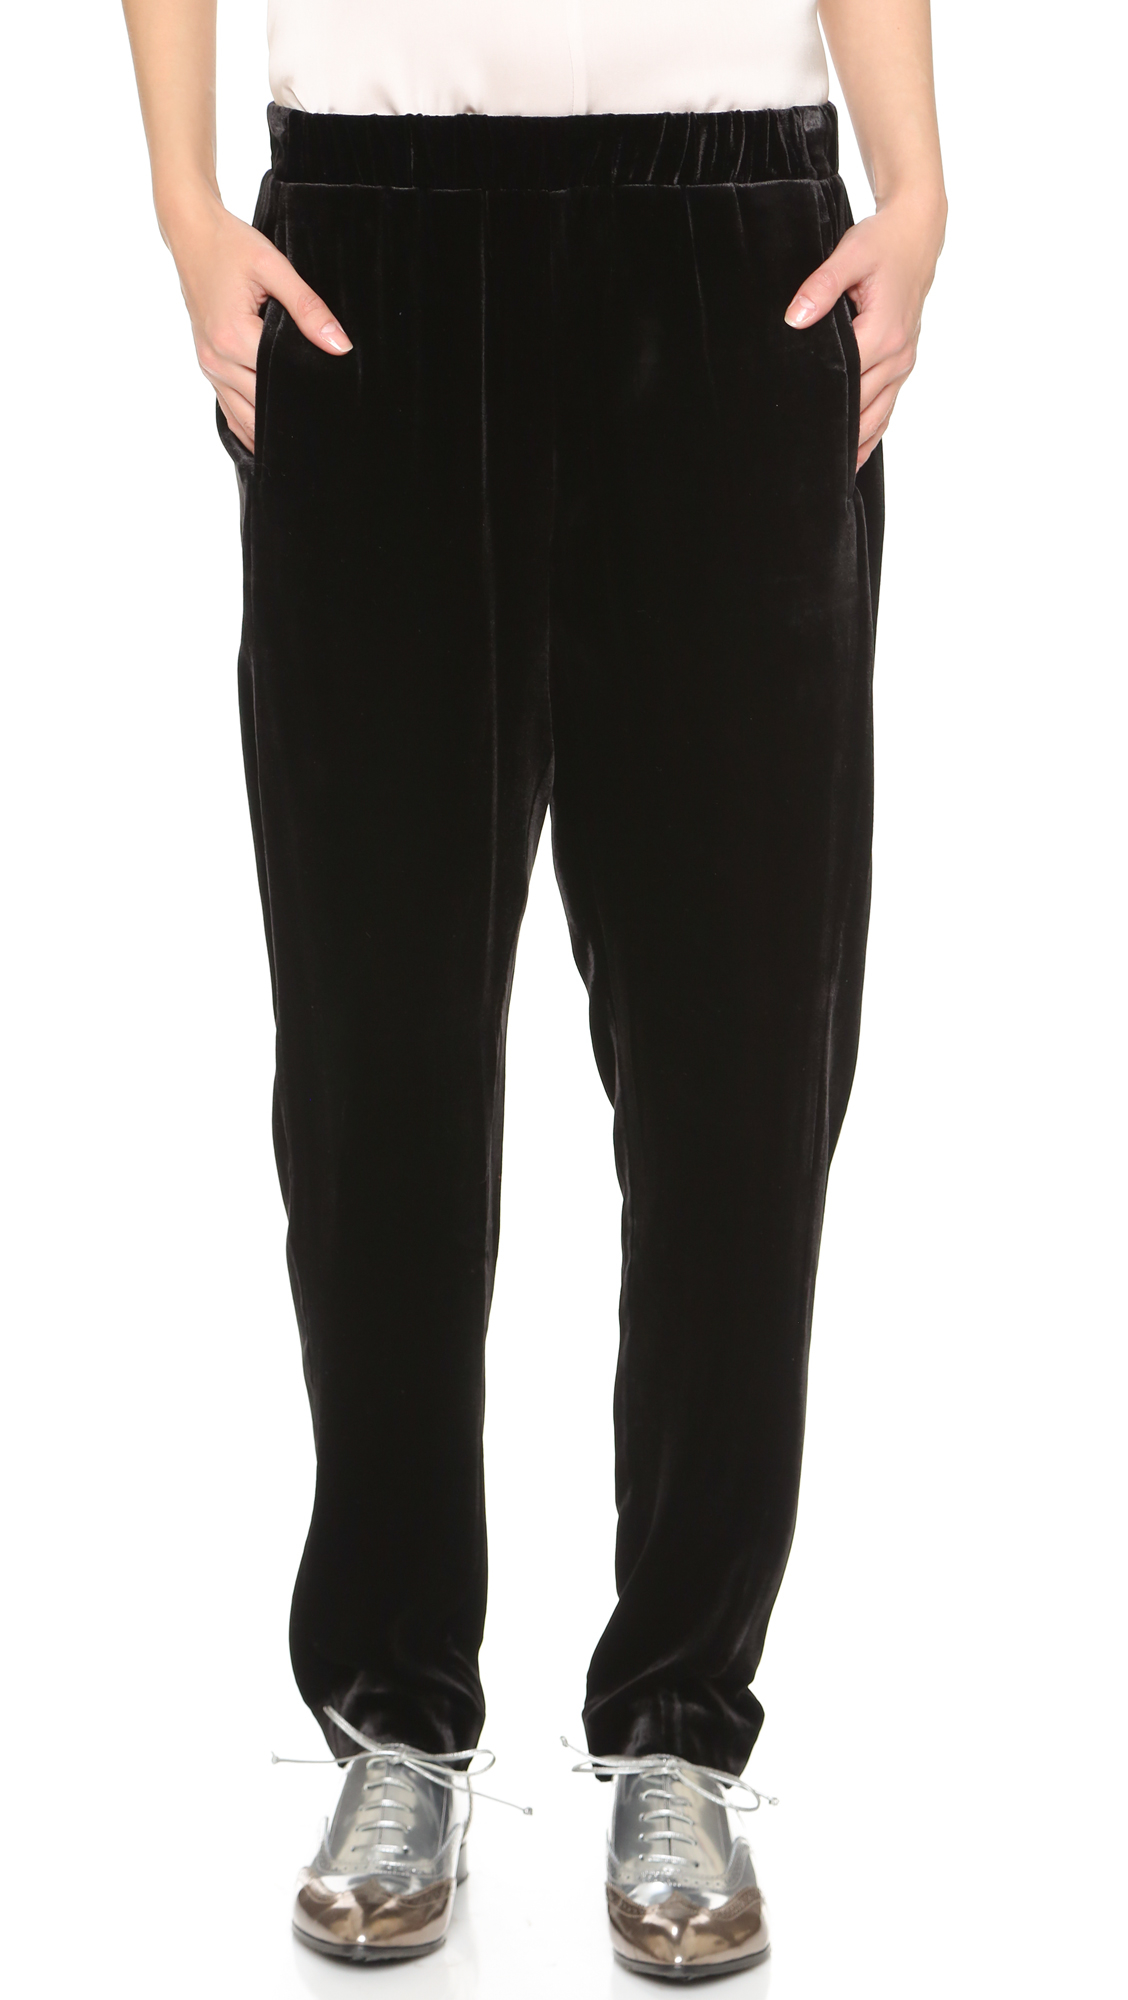 Theory Thorene Velvet Pants - Black in Black | Lyst